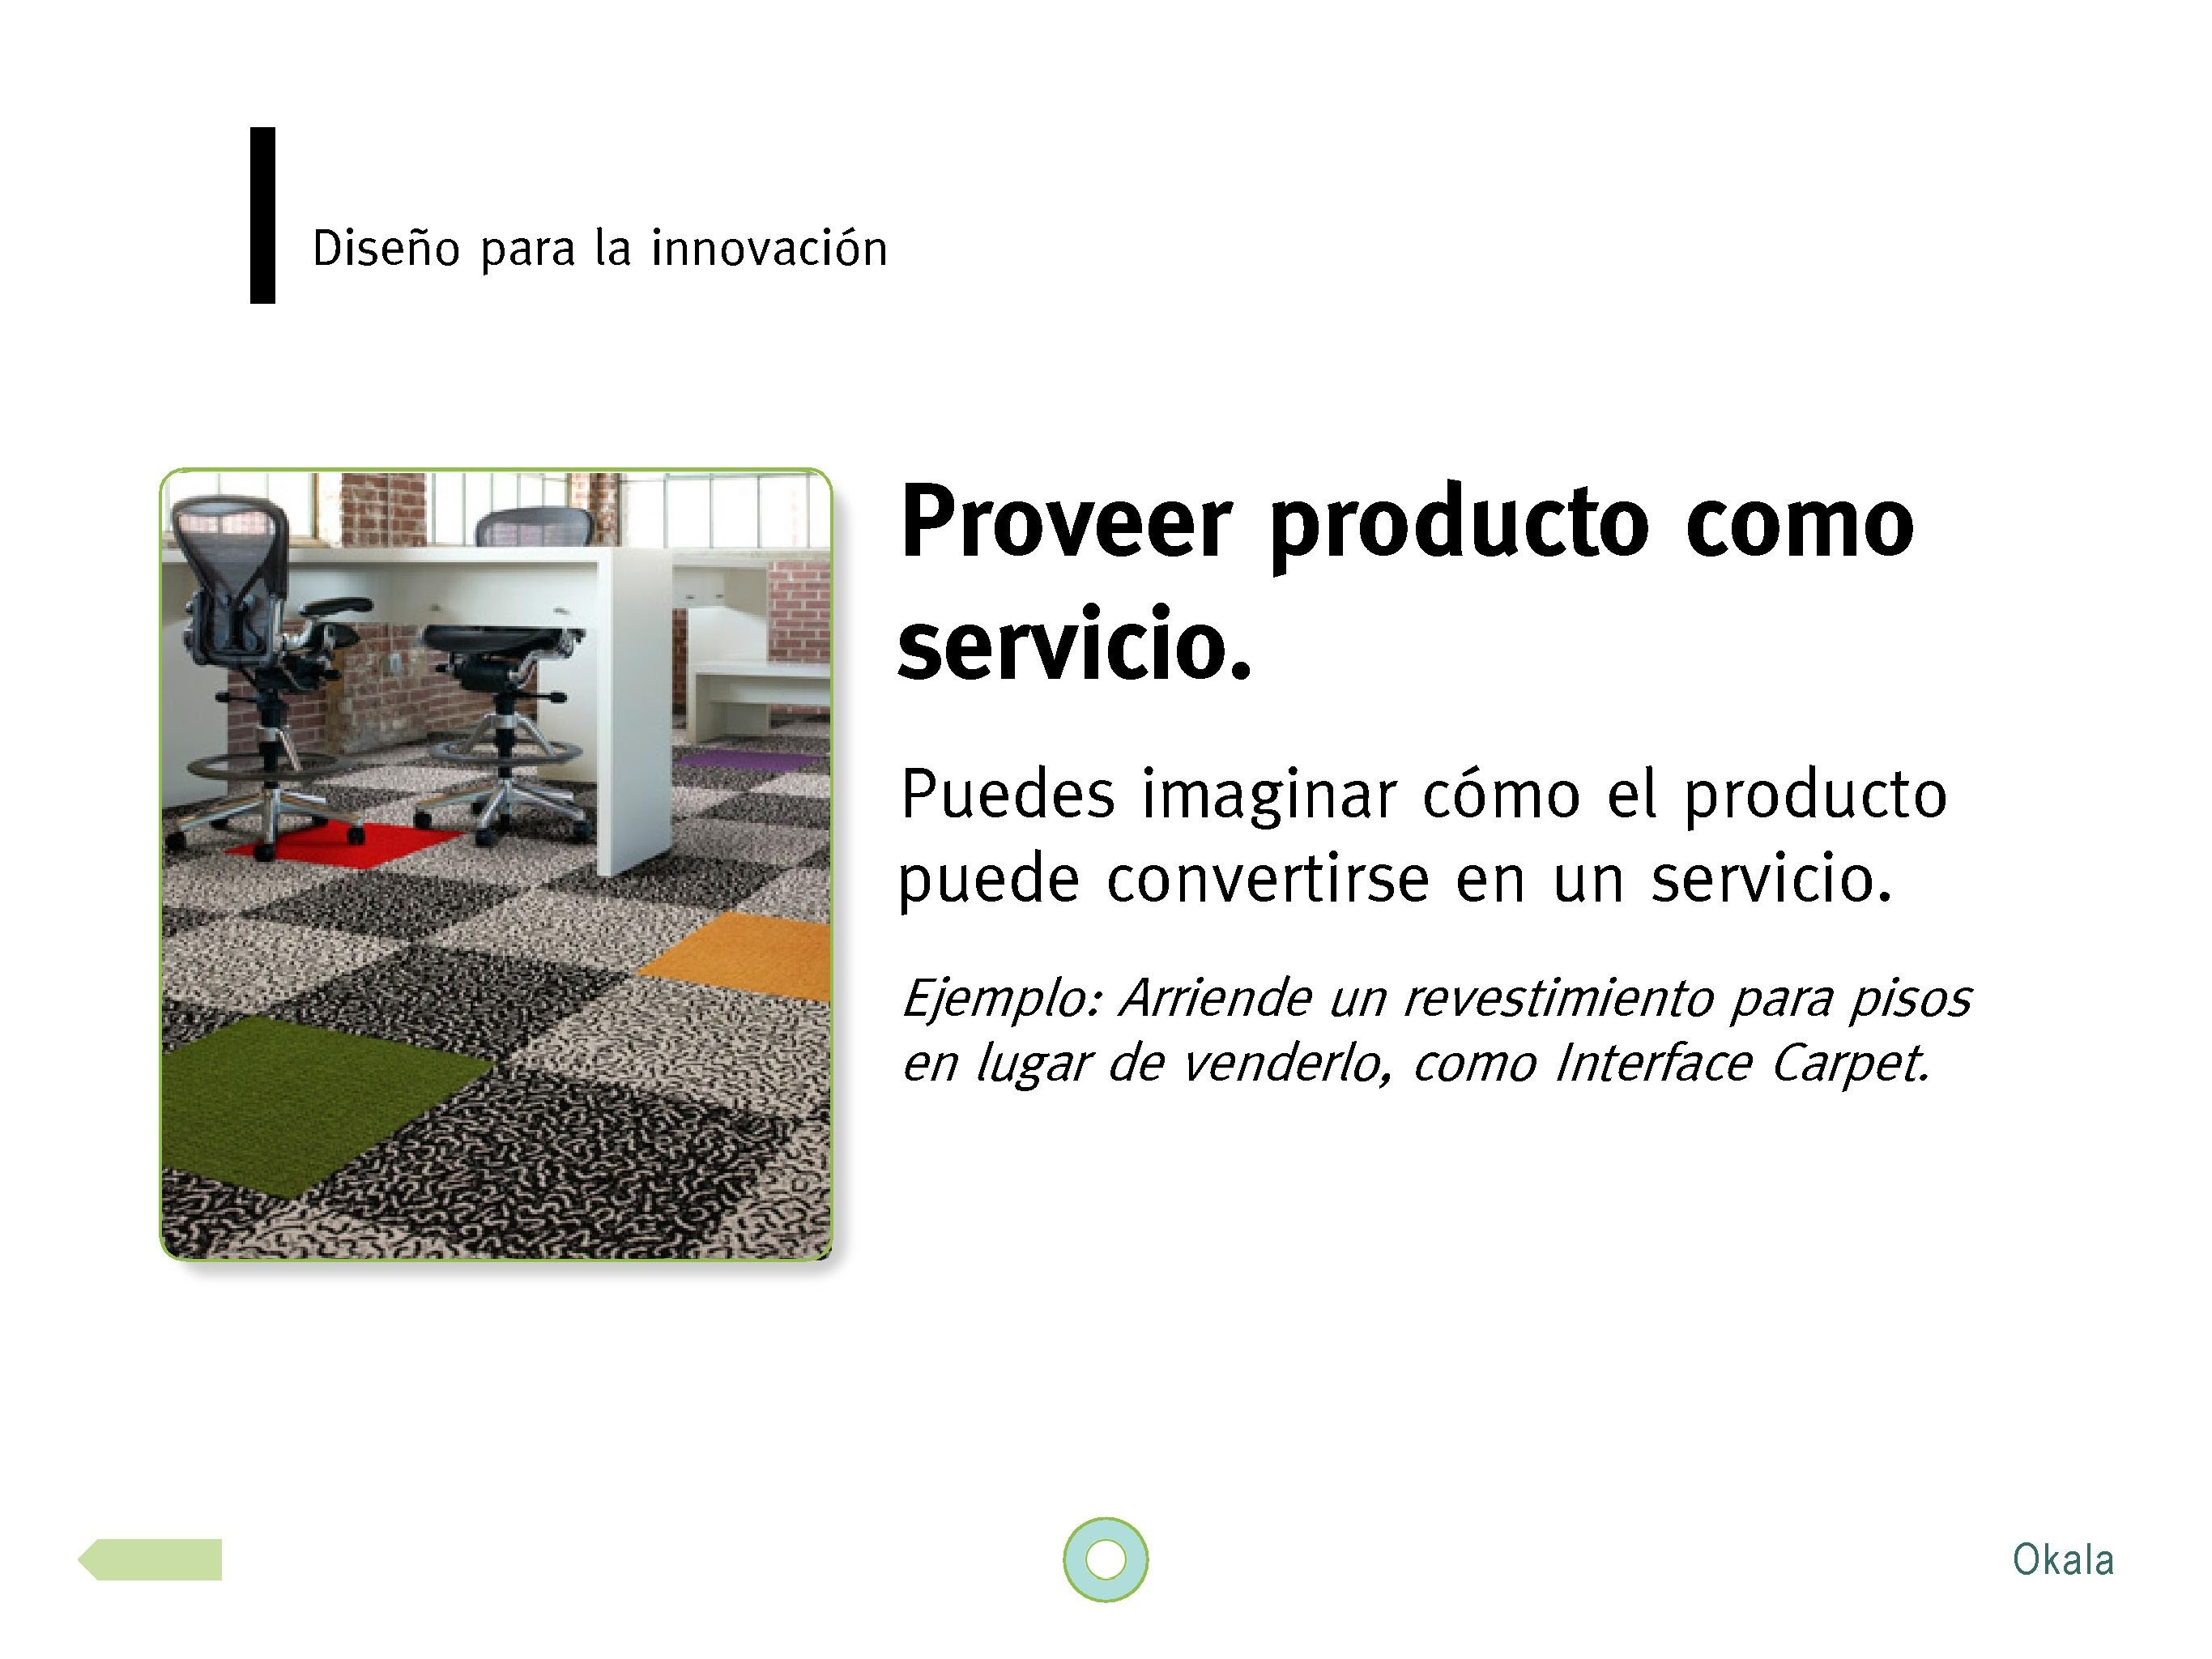 okala-ecodesign-strategy-guide-2012-spanish.new_page_03-1